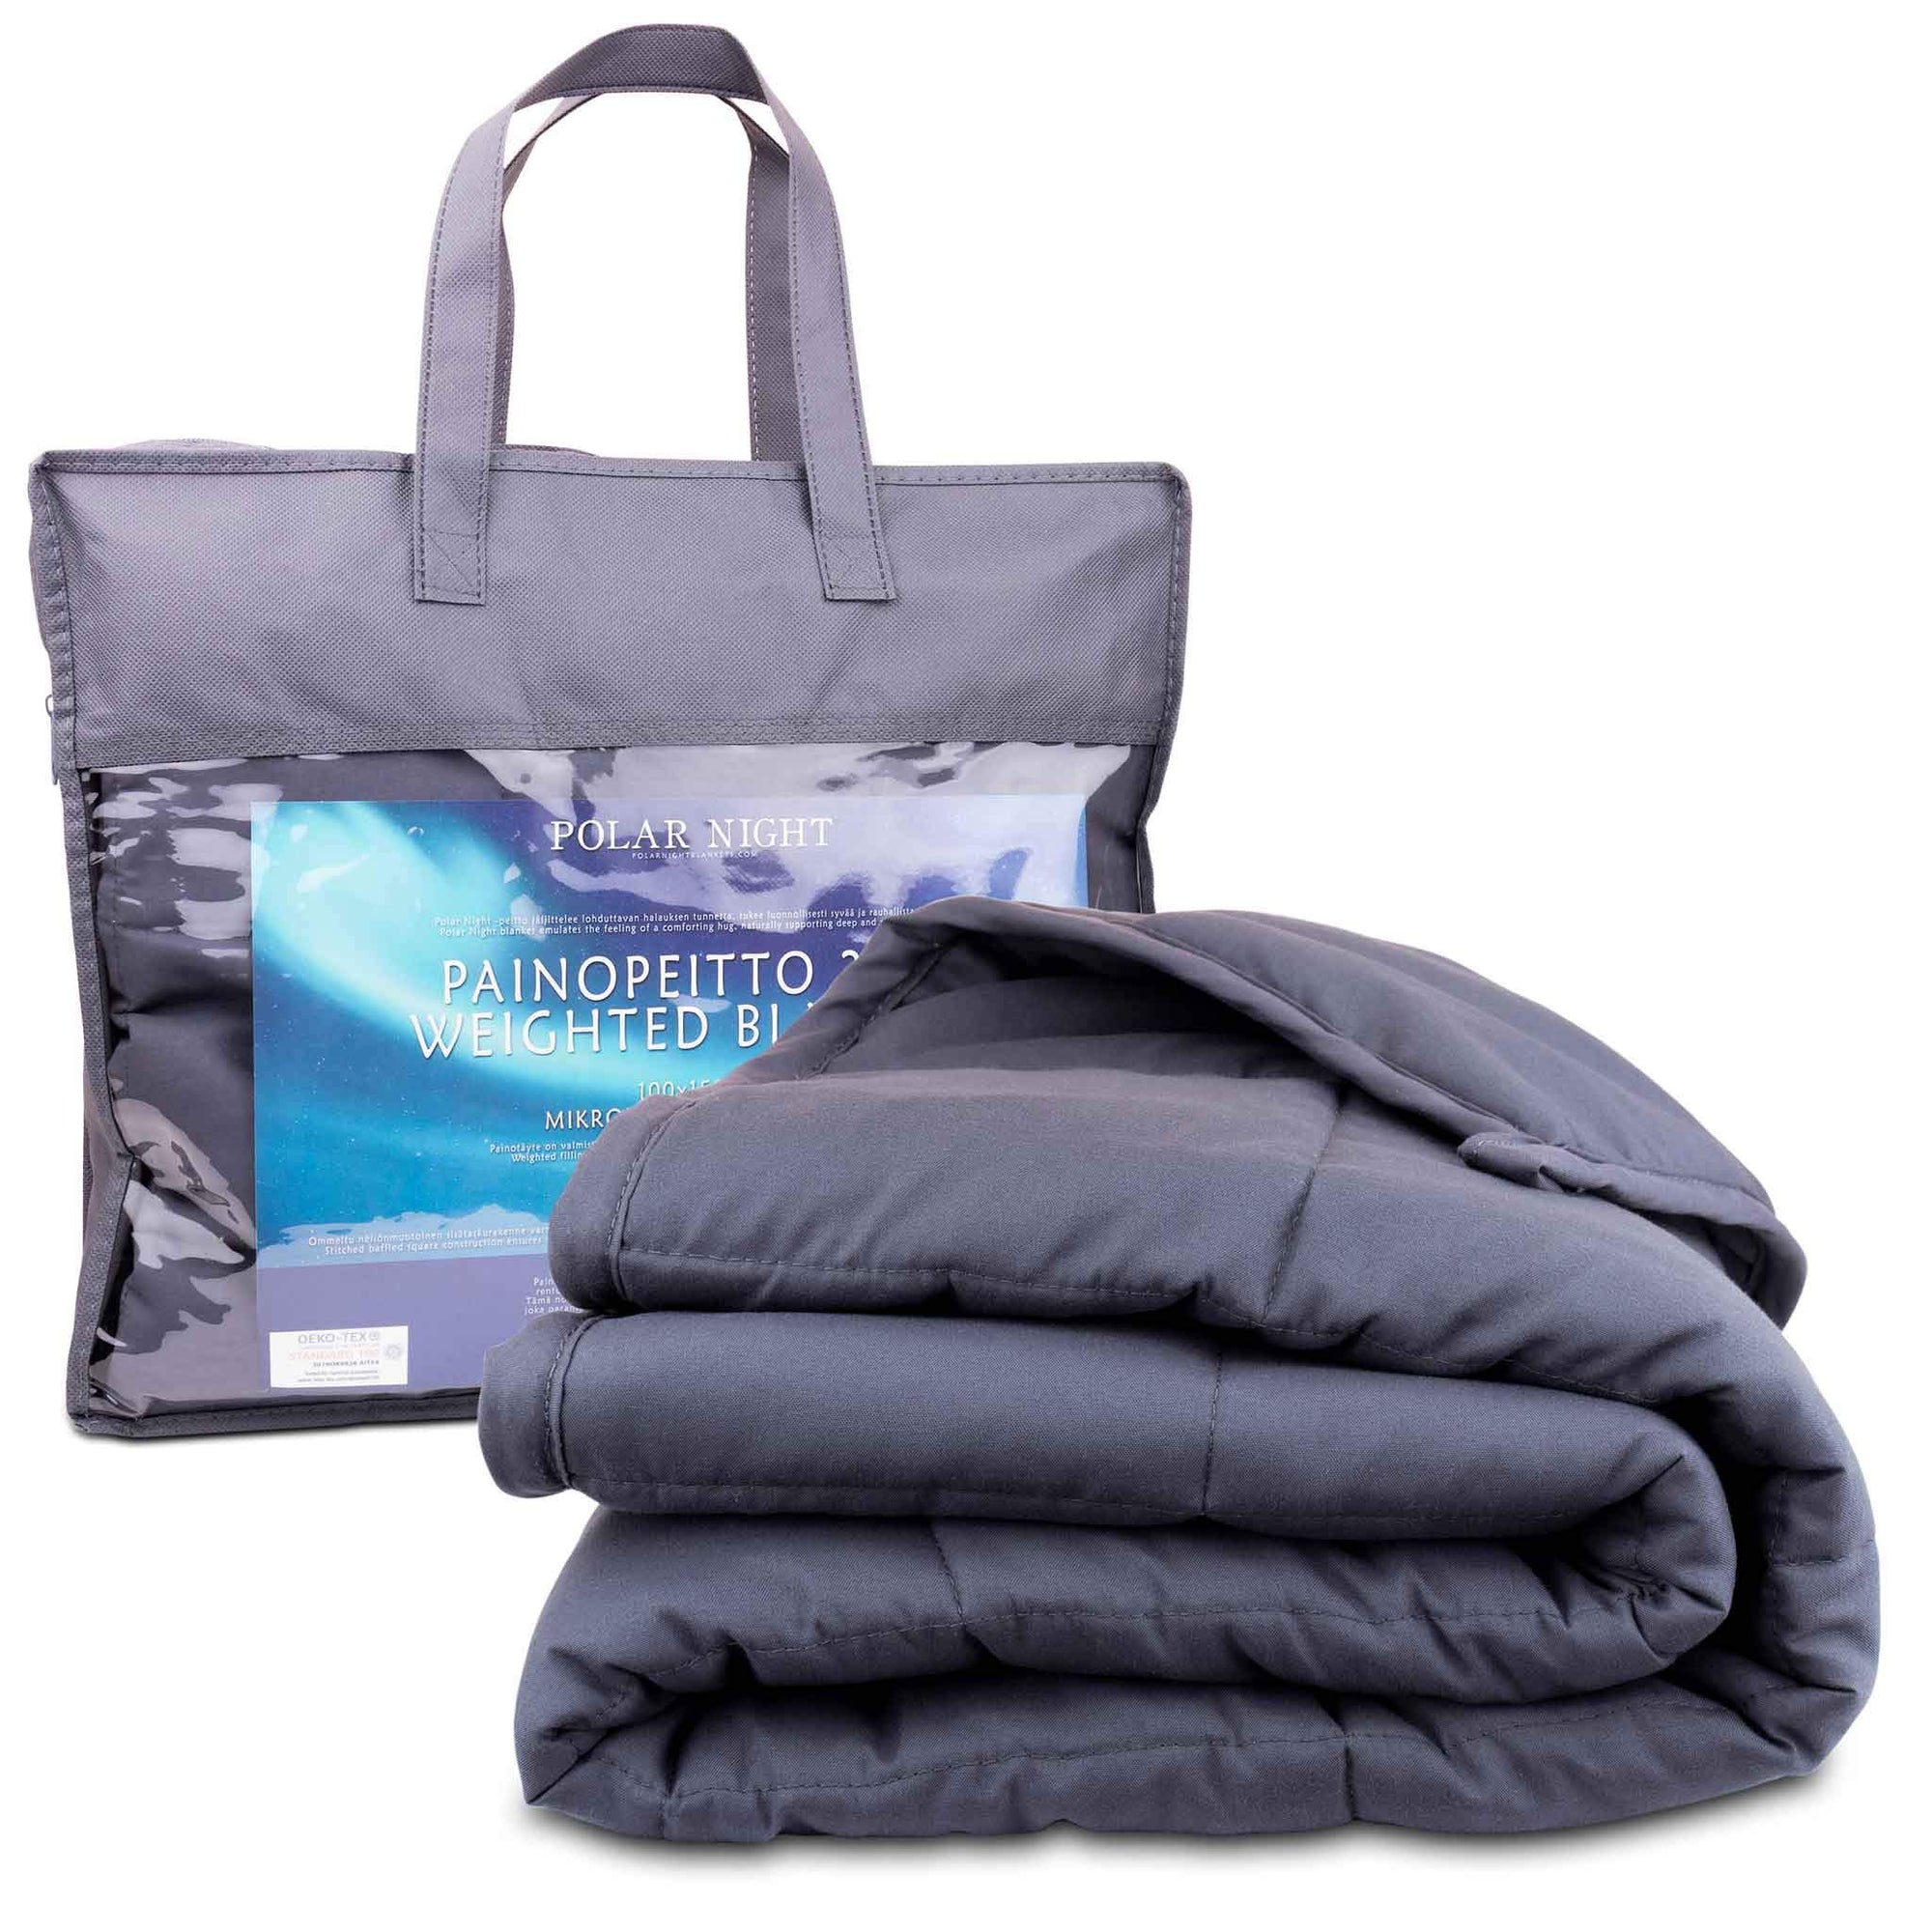 Polar Night Weighted Blanket 3-5kg, 100x150cm